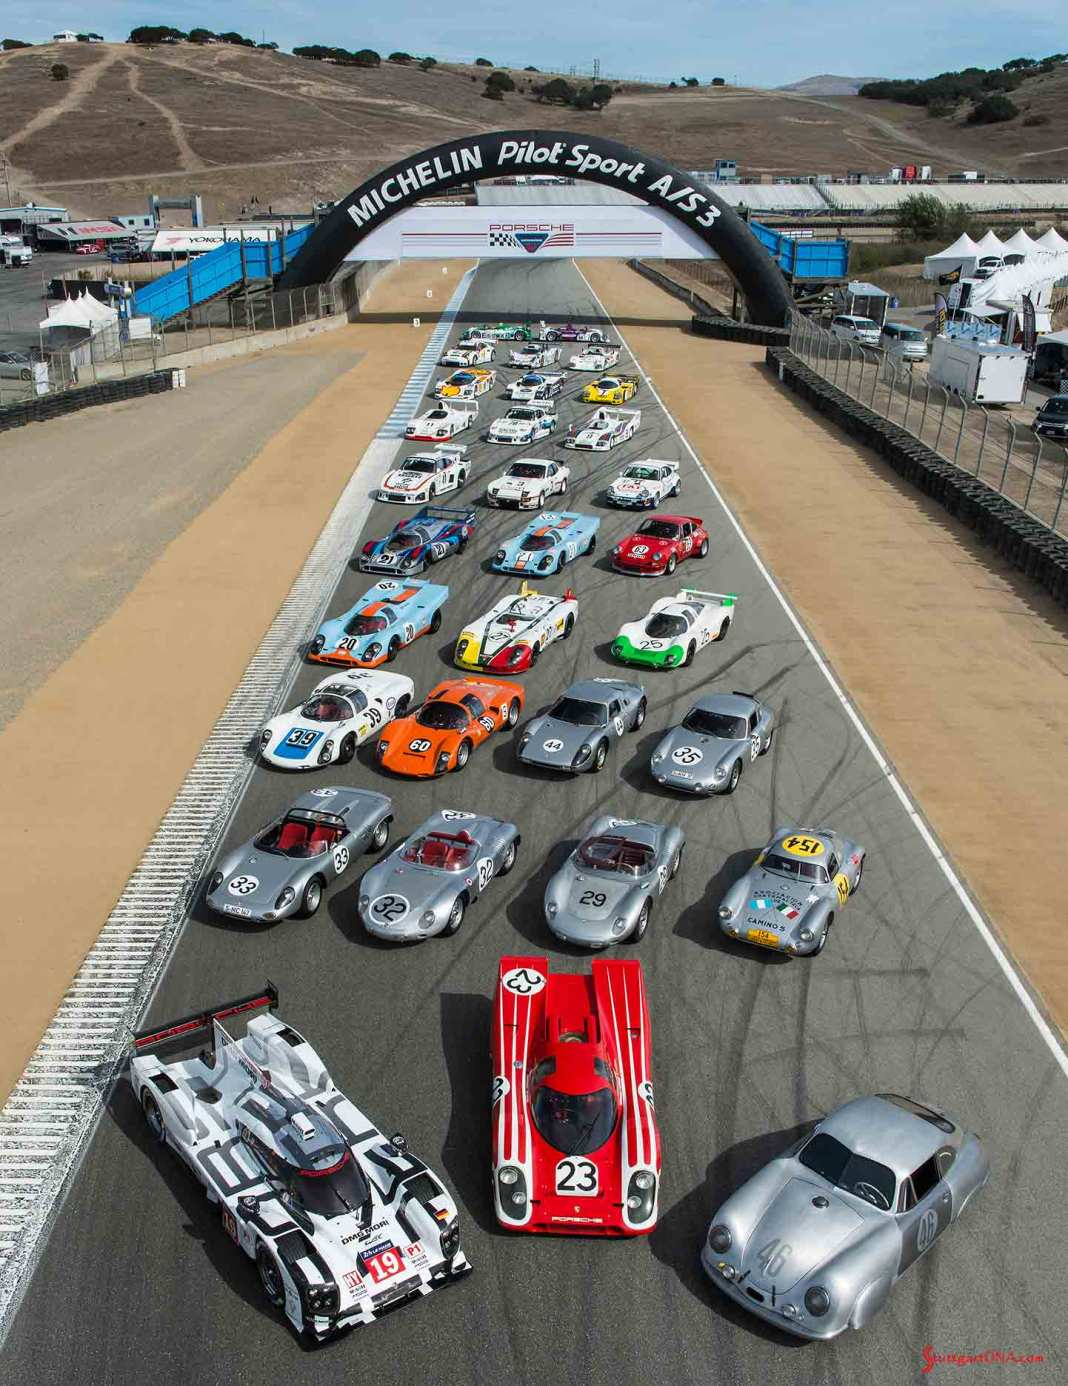 Porsche announces 2018 Rennsport Reunion VI: Shown here on the lower Laguna Seca straightaway between Turns 3 and 4 is the 2015 Porsche Rennsport Reunion V family portrait showing a diverse sampling of Porsche race cars. The grouping spans from the No. 46 356 SL Gmund Coupe to the present-day 919 Hybrid, both Le Mans winners in their respective heydays. Credit: Porsche AG